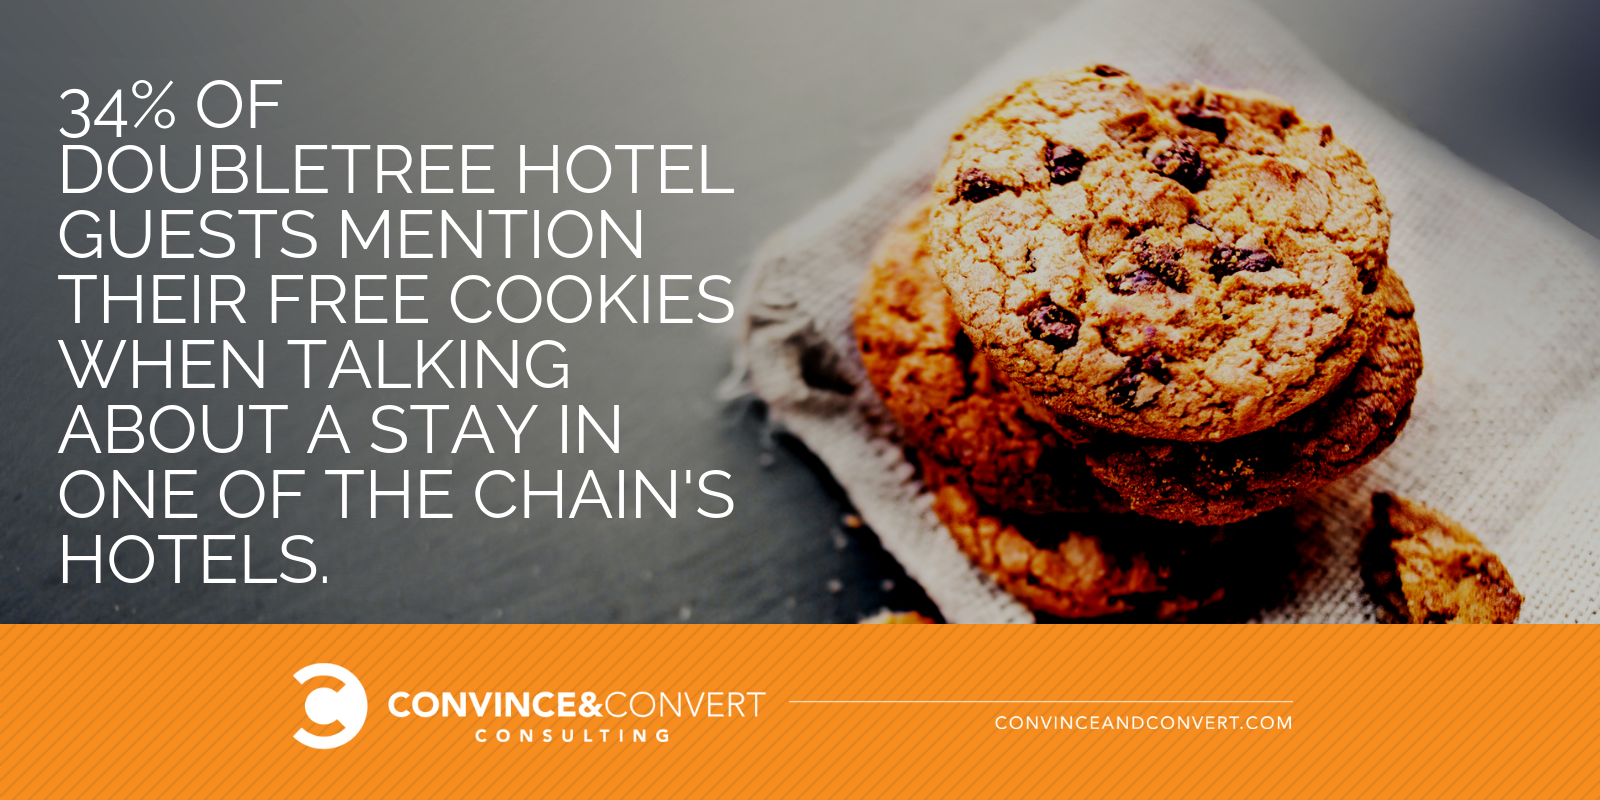 doubletree hotel free cookies